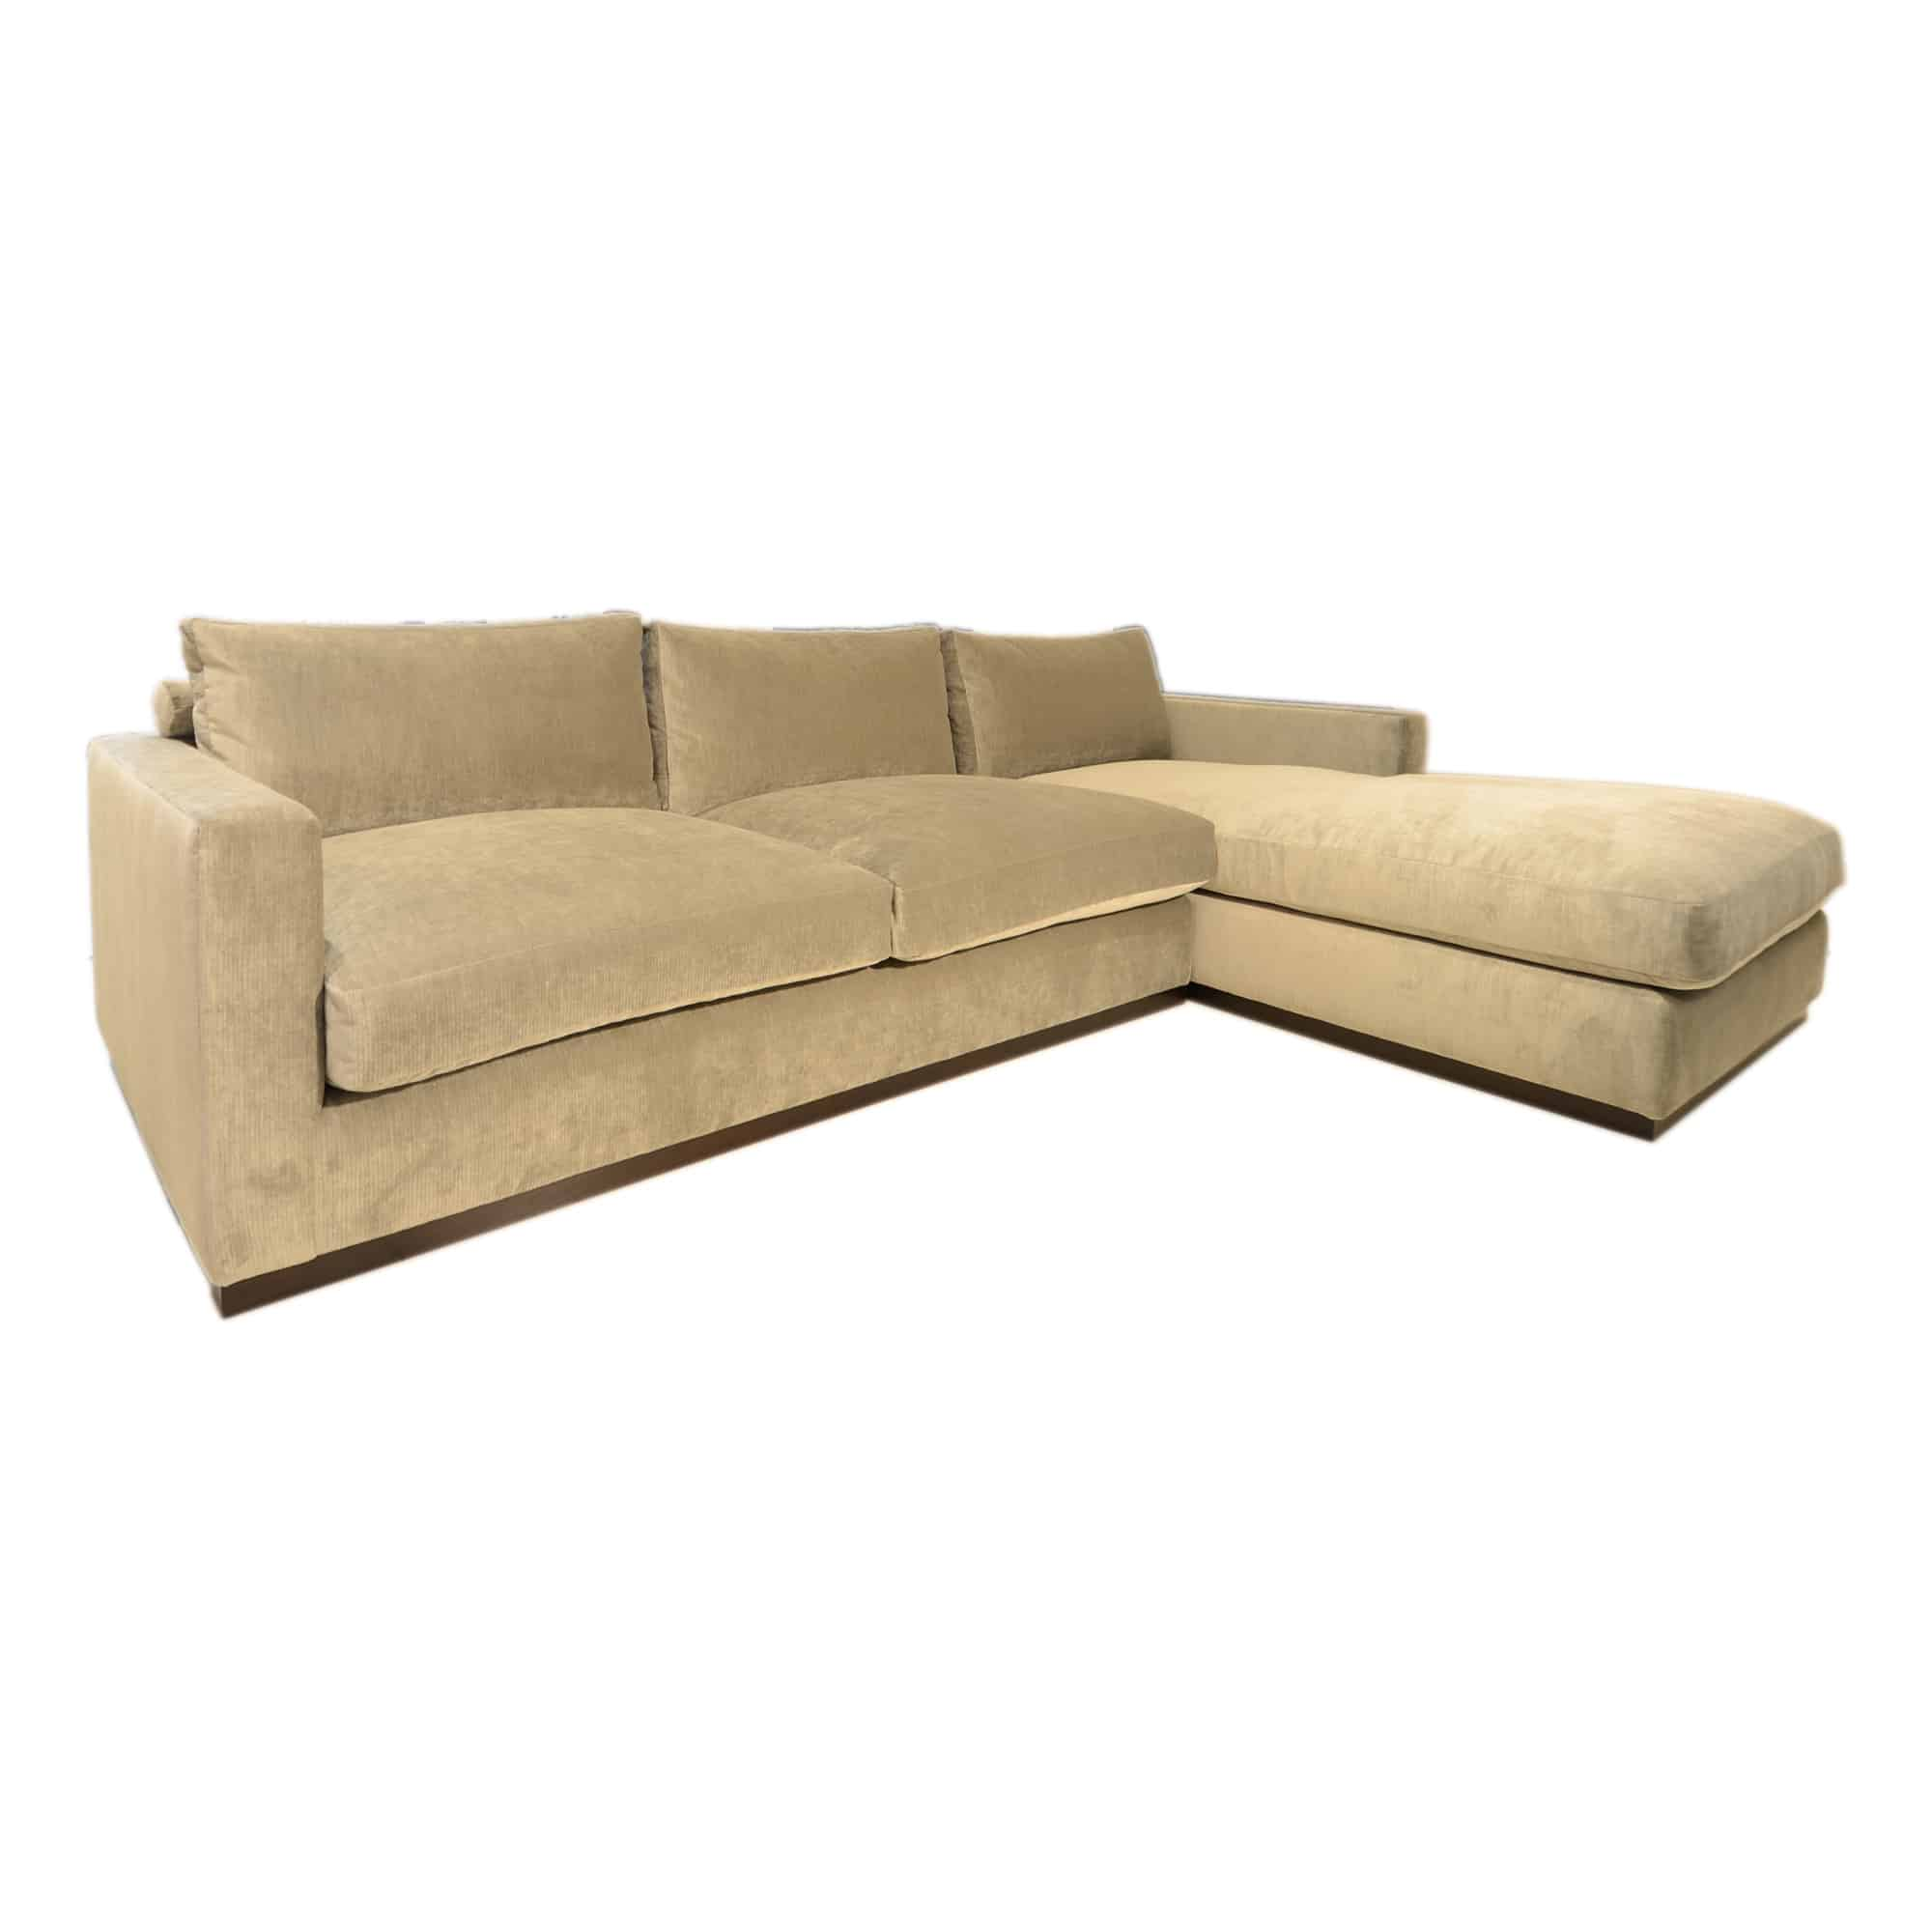 sofa bluebell chaise natuzzi replacement parts sectional chelsea large thesofa